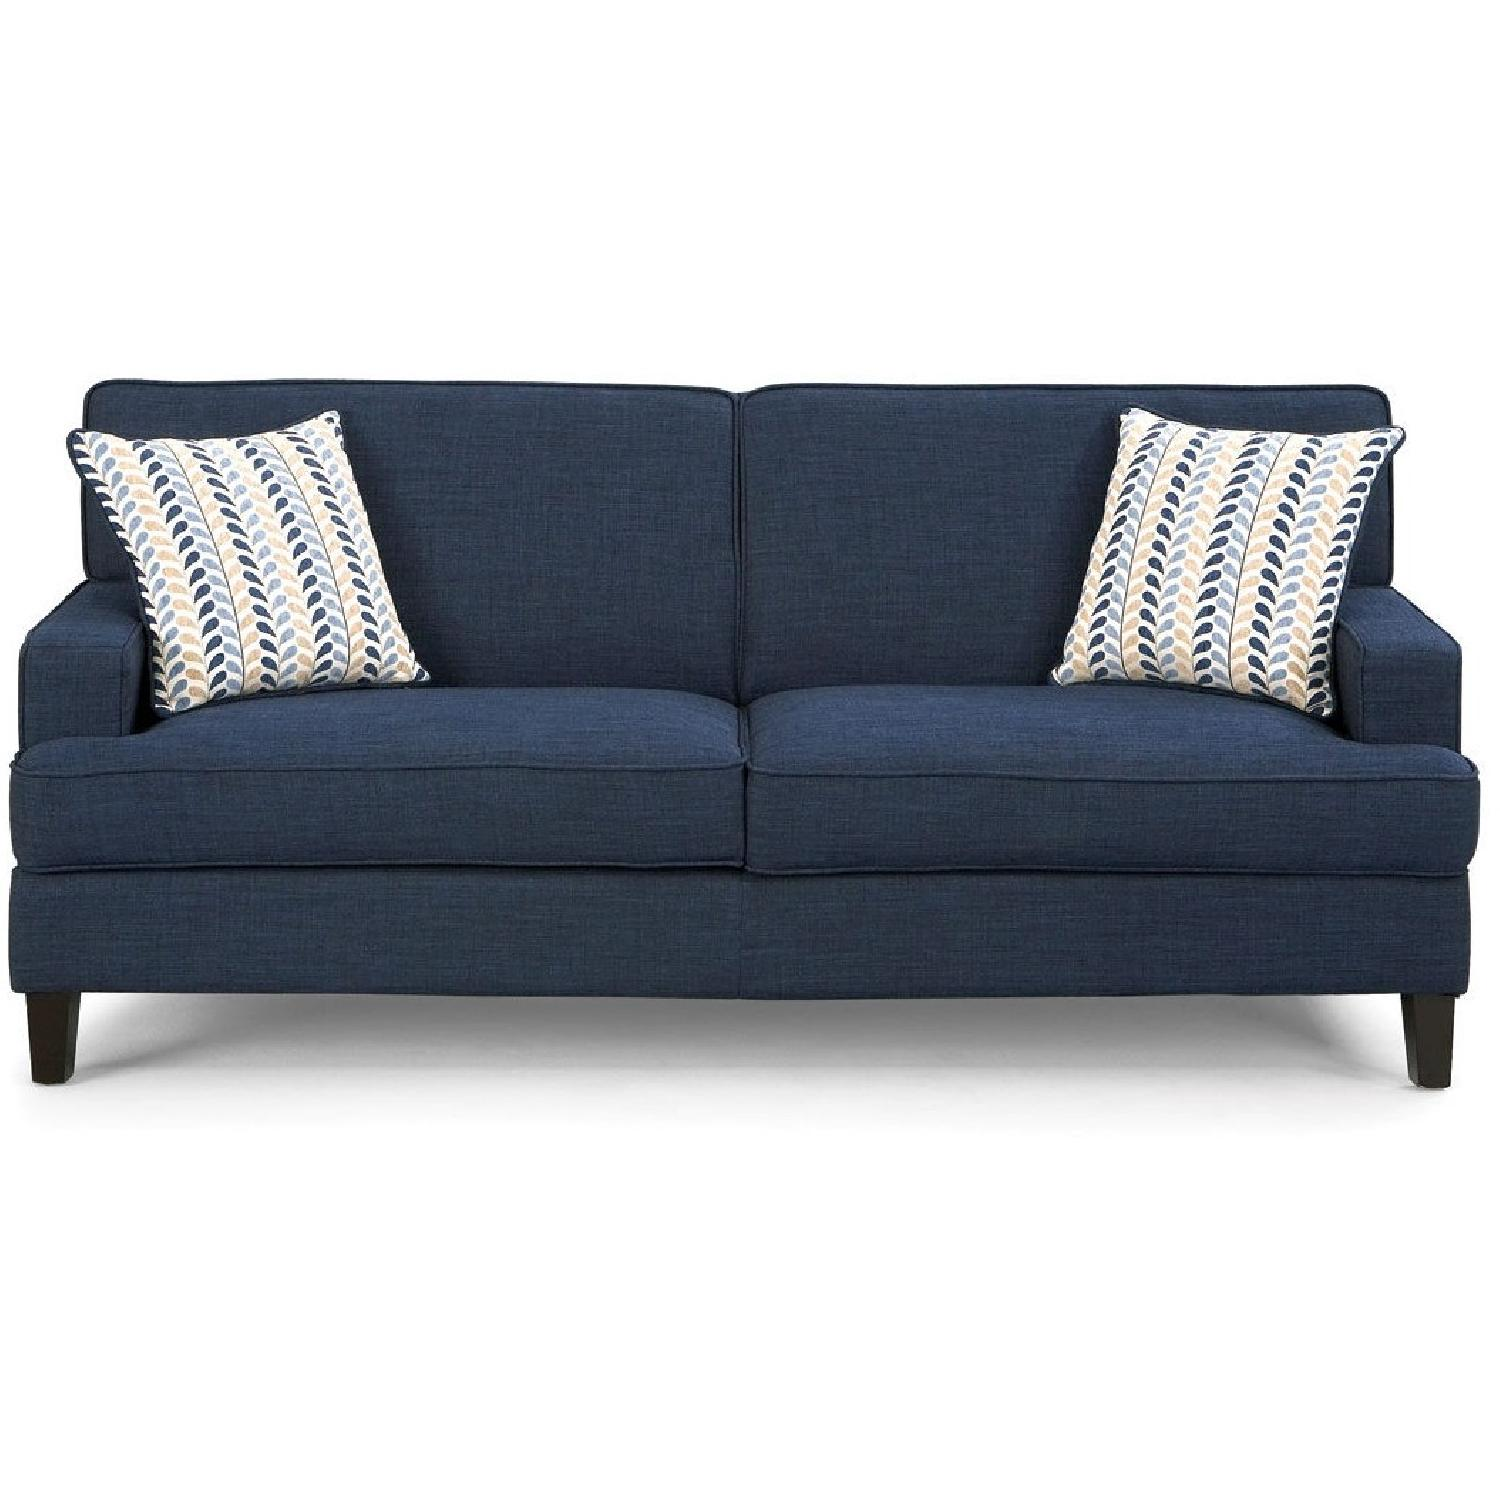 Ink-Blue Fabric Sofa w/ Pocket-Coil Cushions & Accent Pillows